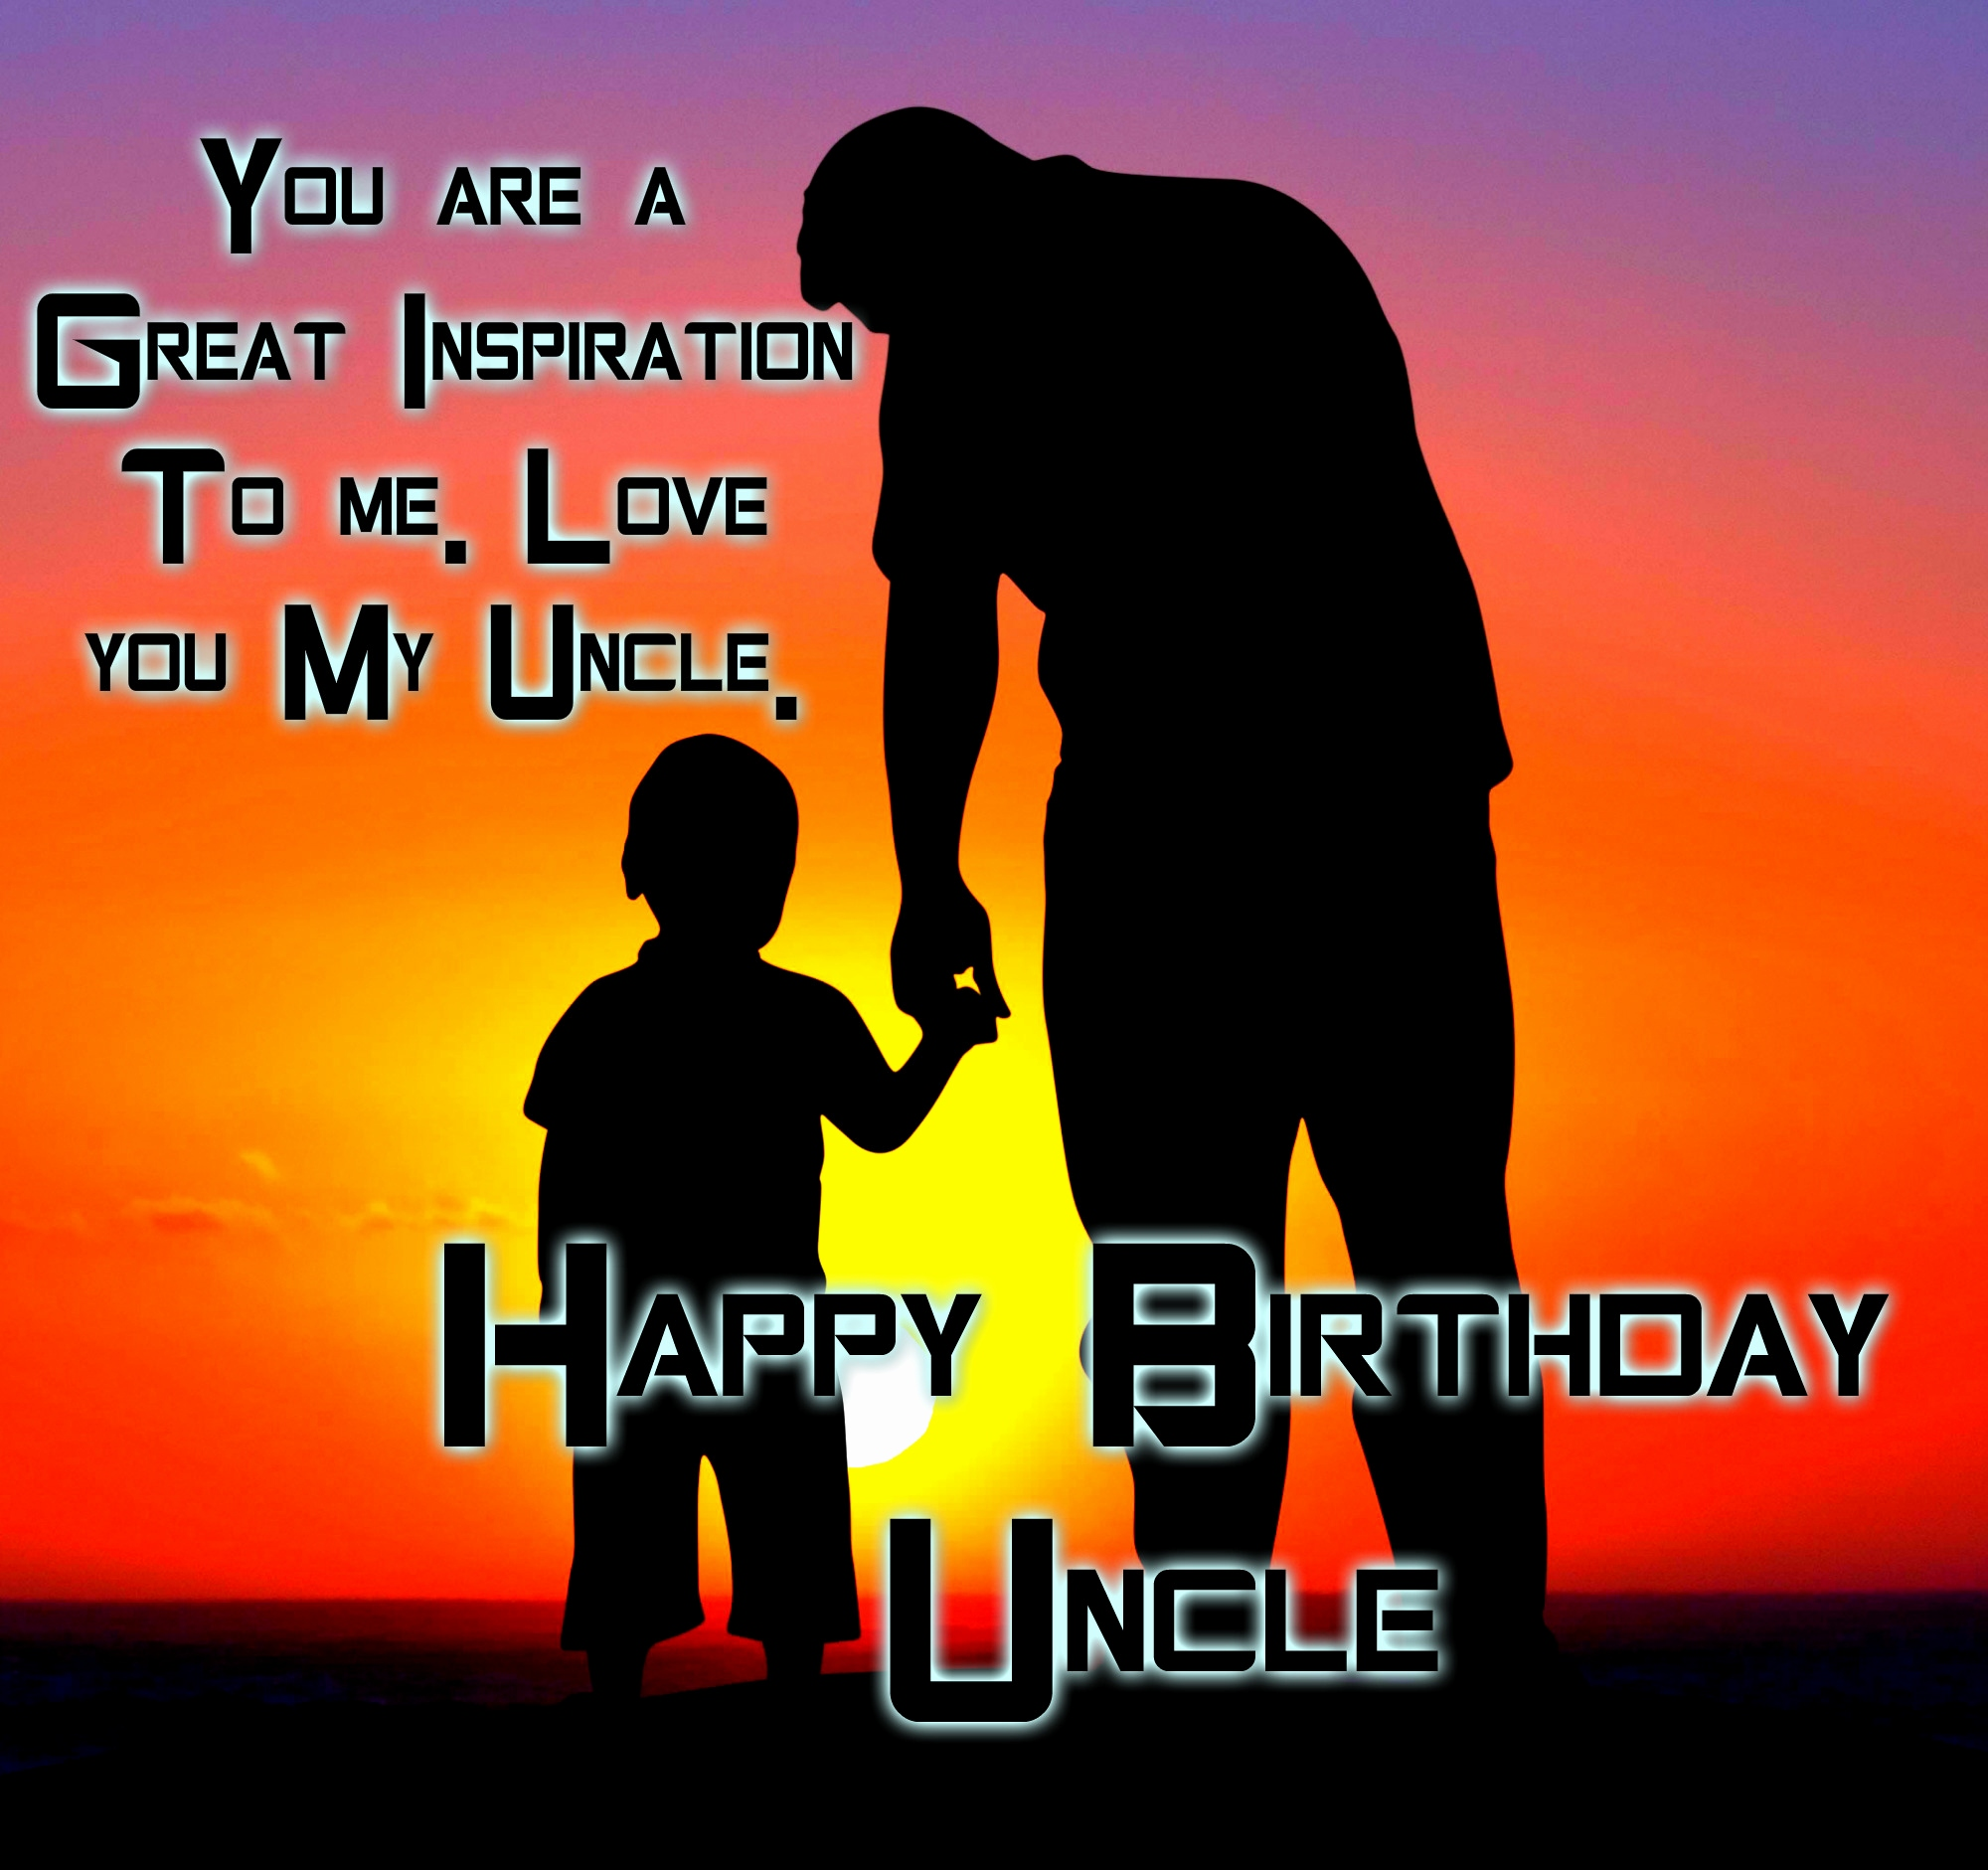 uncle birthday card messages ; free-religious-birthday-cards-best-of-happy-birthday-uncle-wishes-messages-and-quotes-of-free-religious-birthday-cards